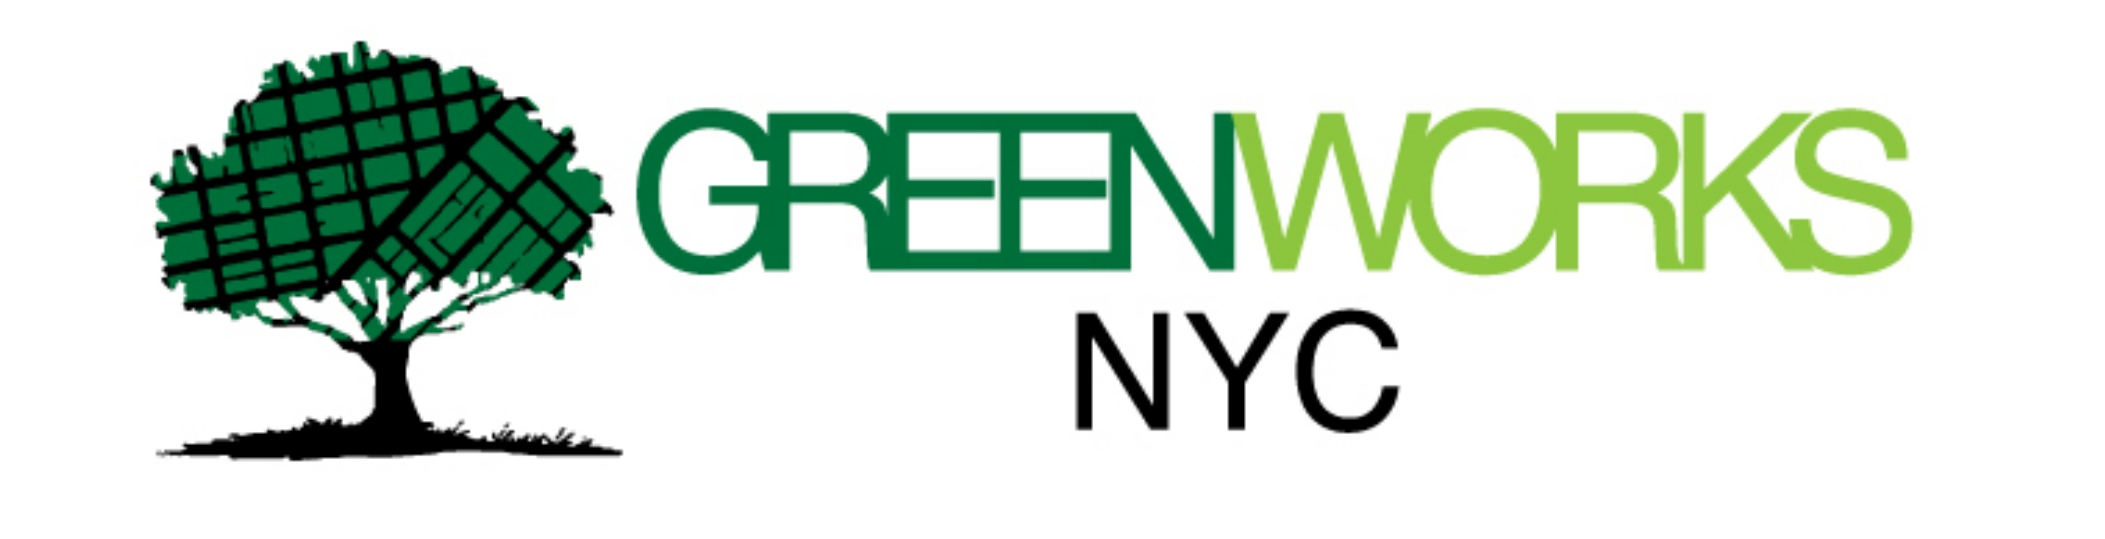 GreenWorks NYC – Ally LaTourelle on Starting up a Green Business